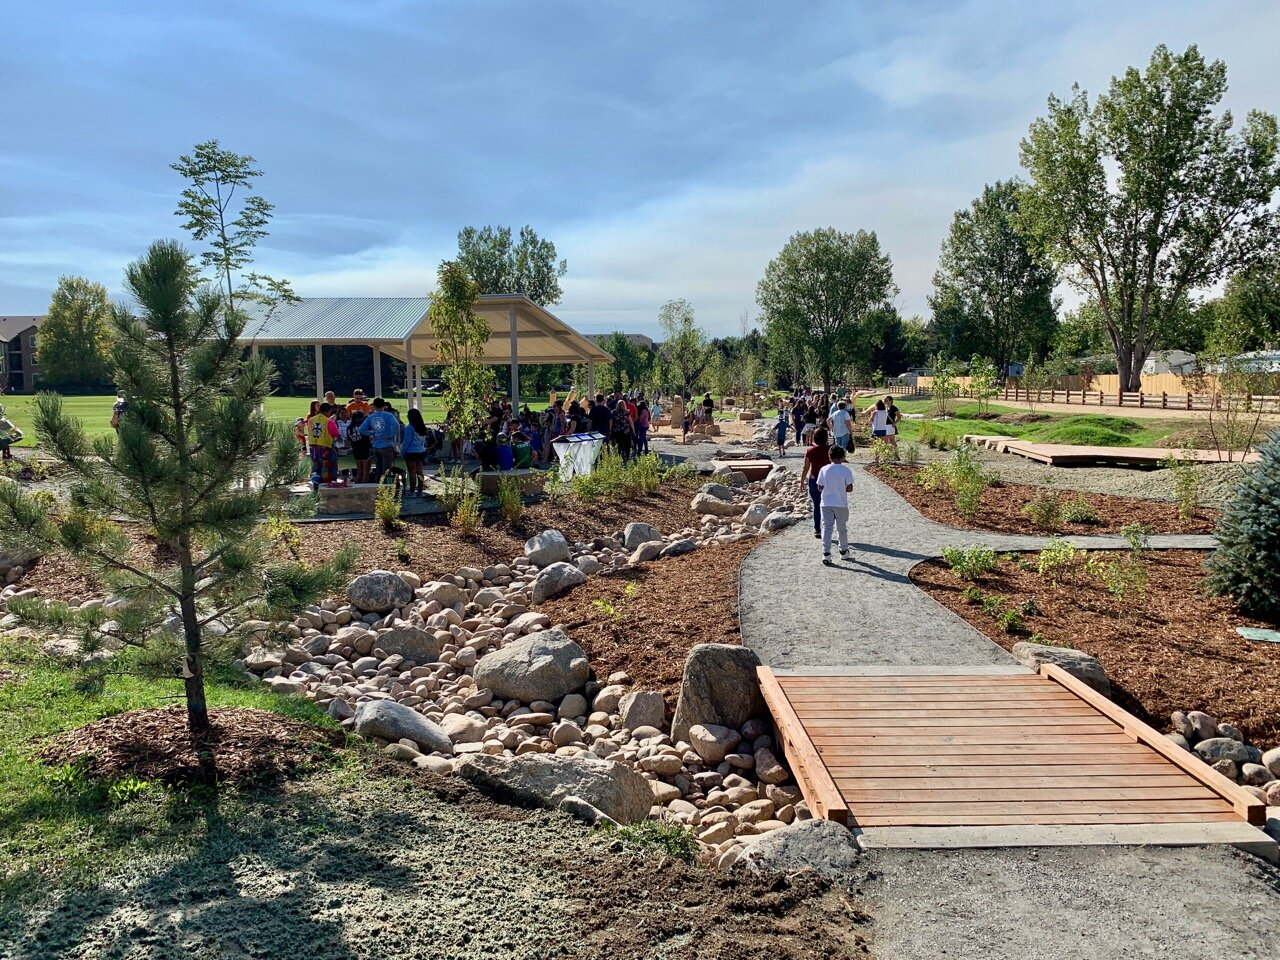 A path made of natural materials leads visitors into the Nature Discovery Area & Inspire Trail in Lafayette, Colorado